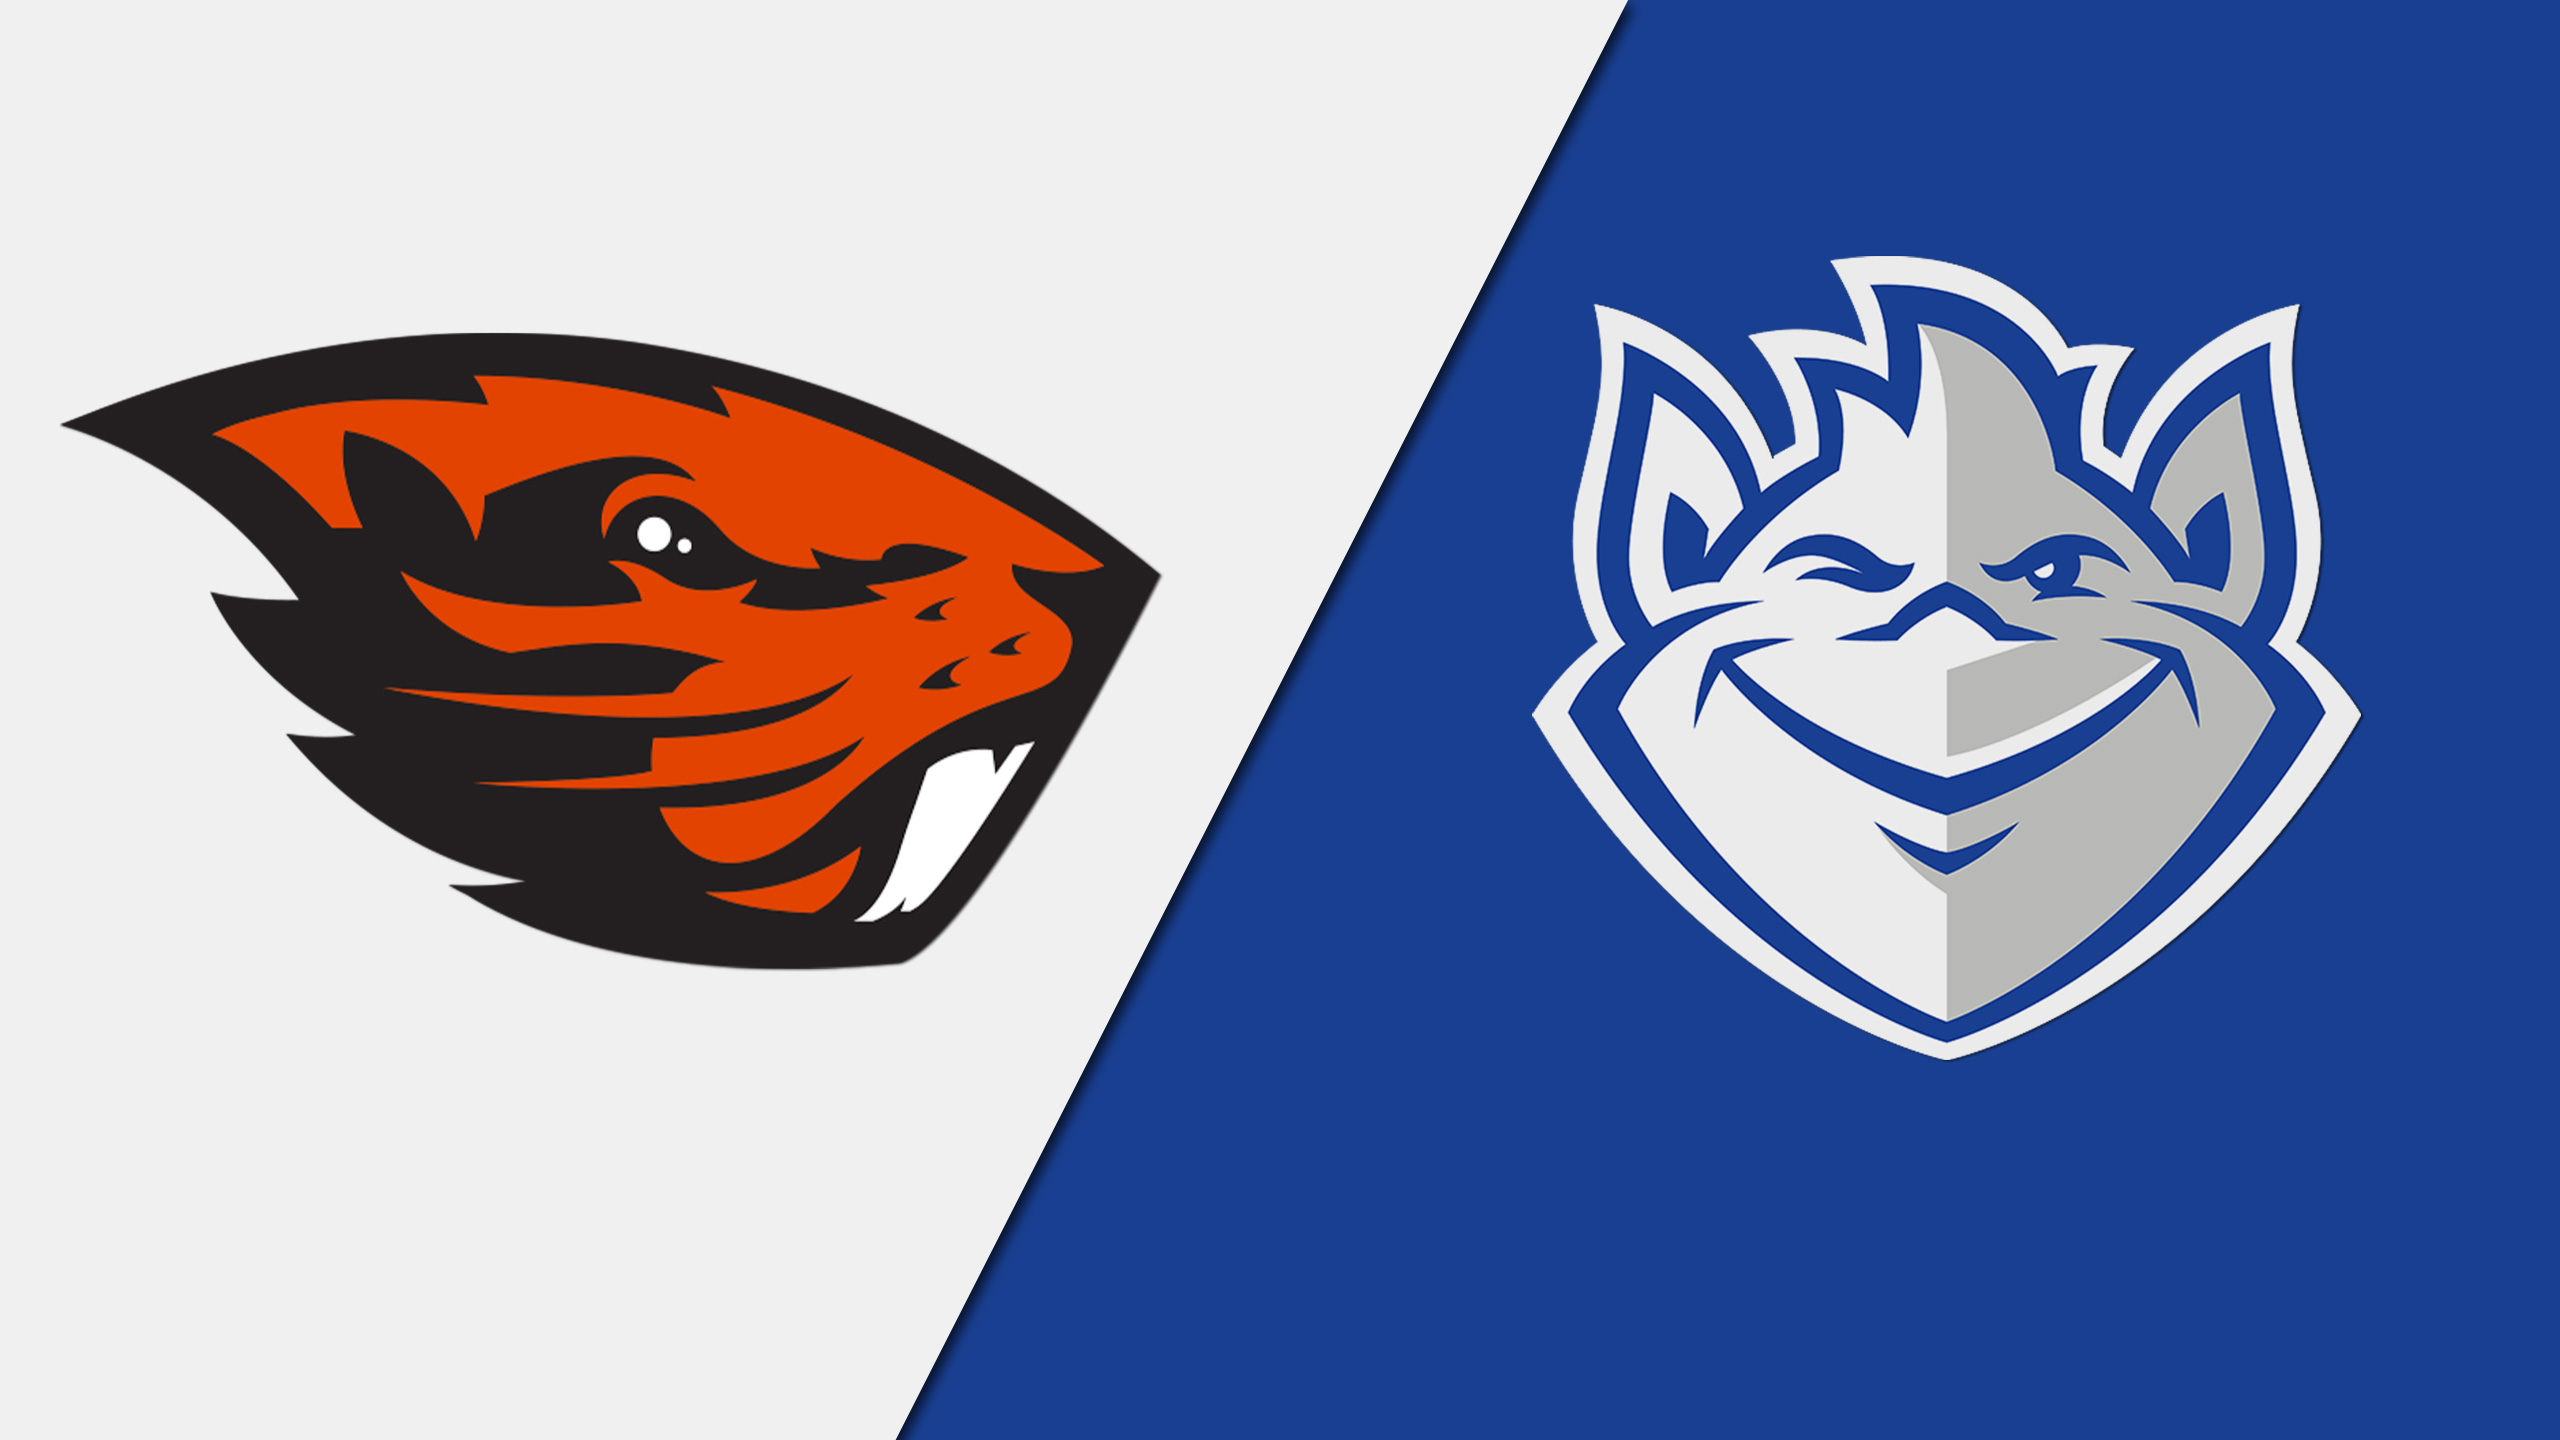 Oregon State vs. Saint Louis (M Basketball) (re-air)